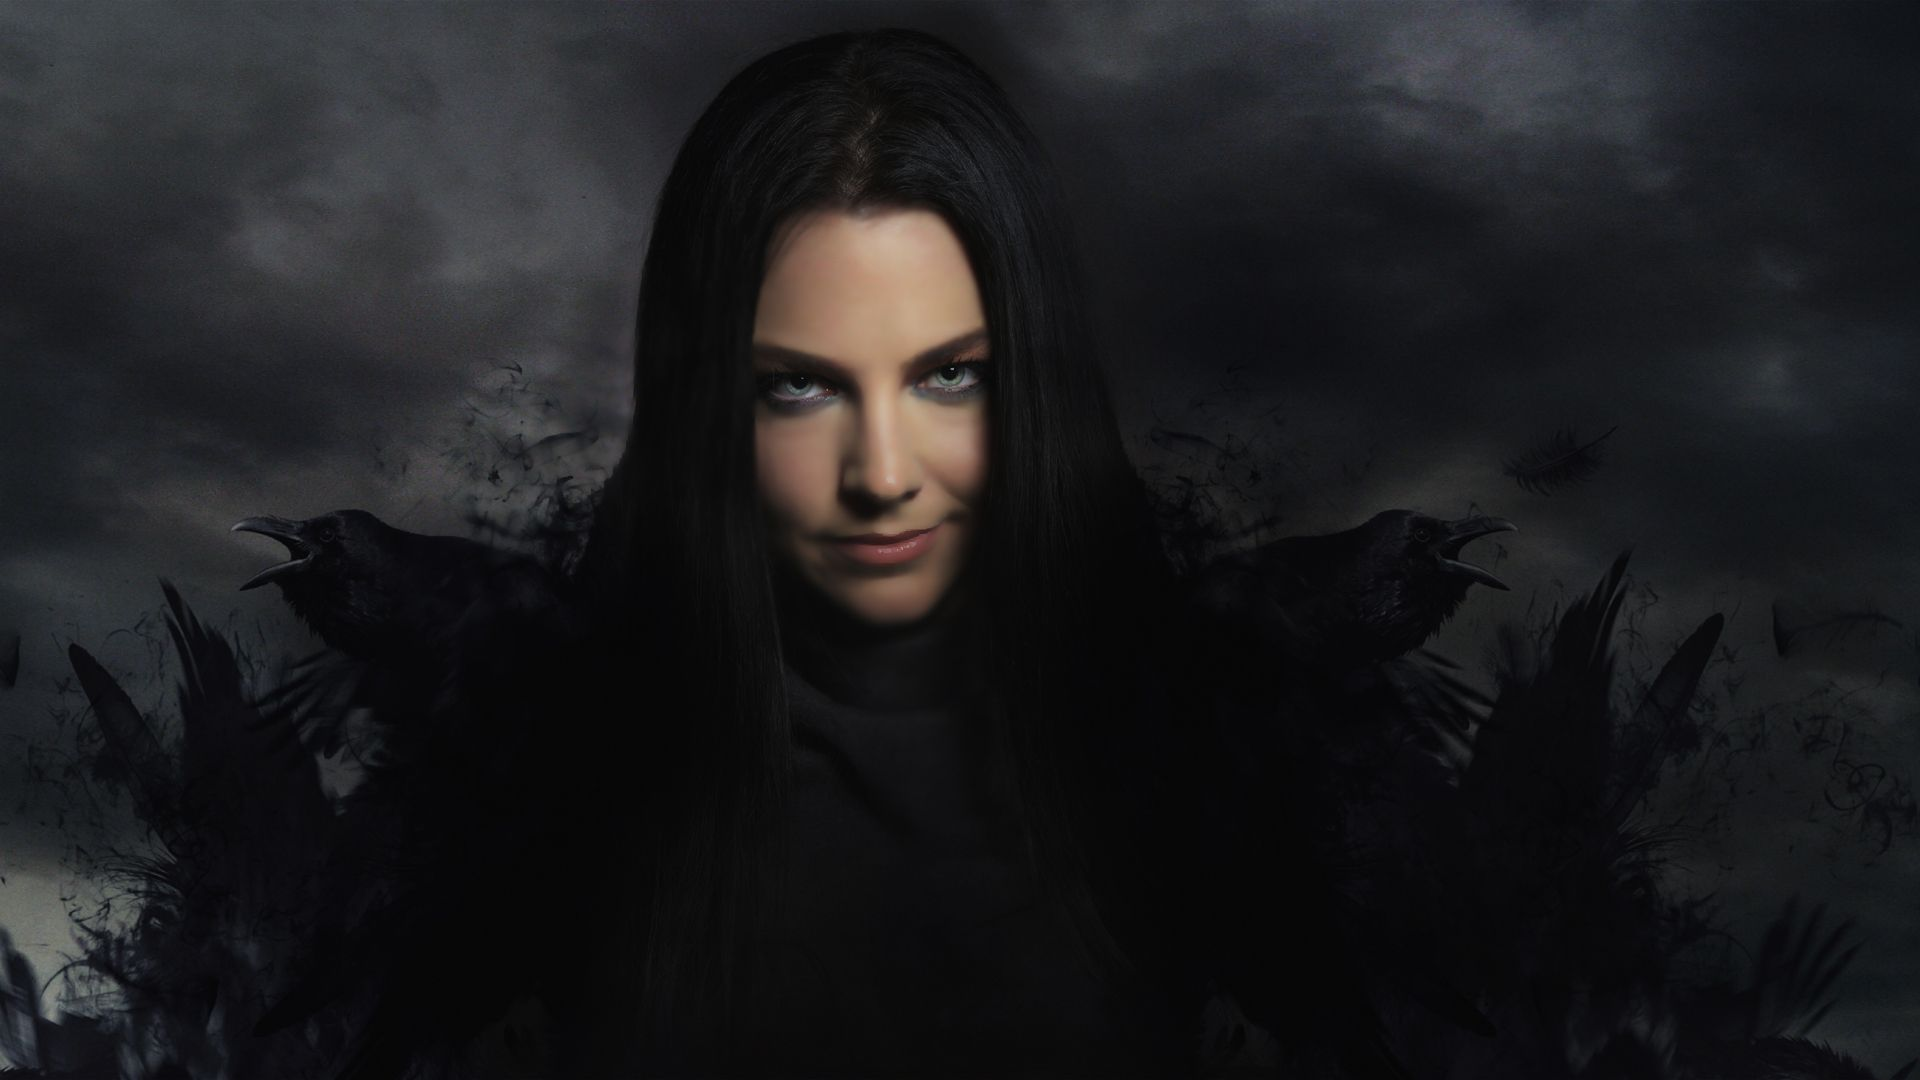 Top Rated High Quality Amy Lee Images   Wonderful Collection 1920x1080